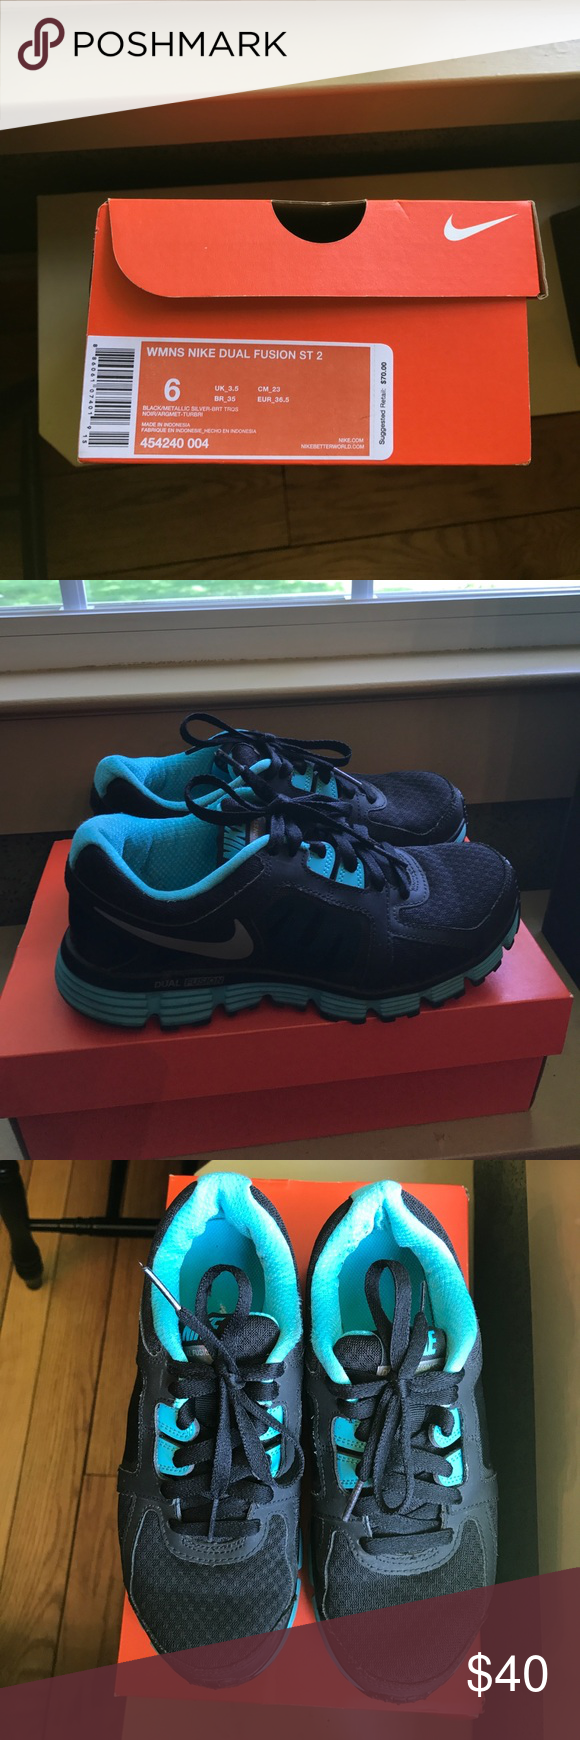 Women s black teal Nike Dual Fusion ST 2 sneakers. Women s Nike Dual Fusion  ST 2 sneakers - black and teal - worn only a few times but good condition 1176bdfb1